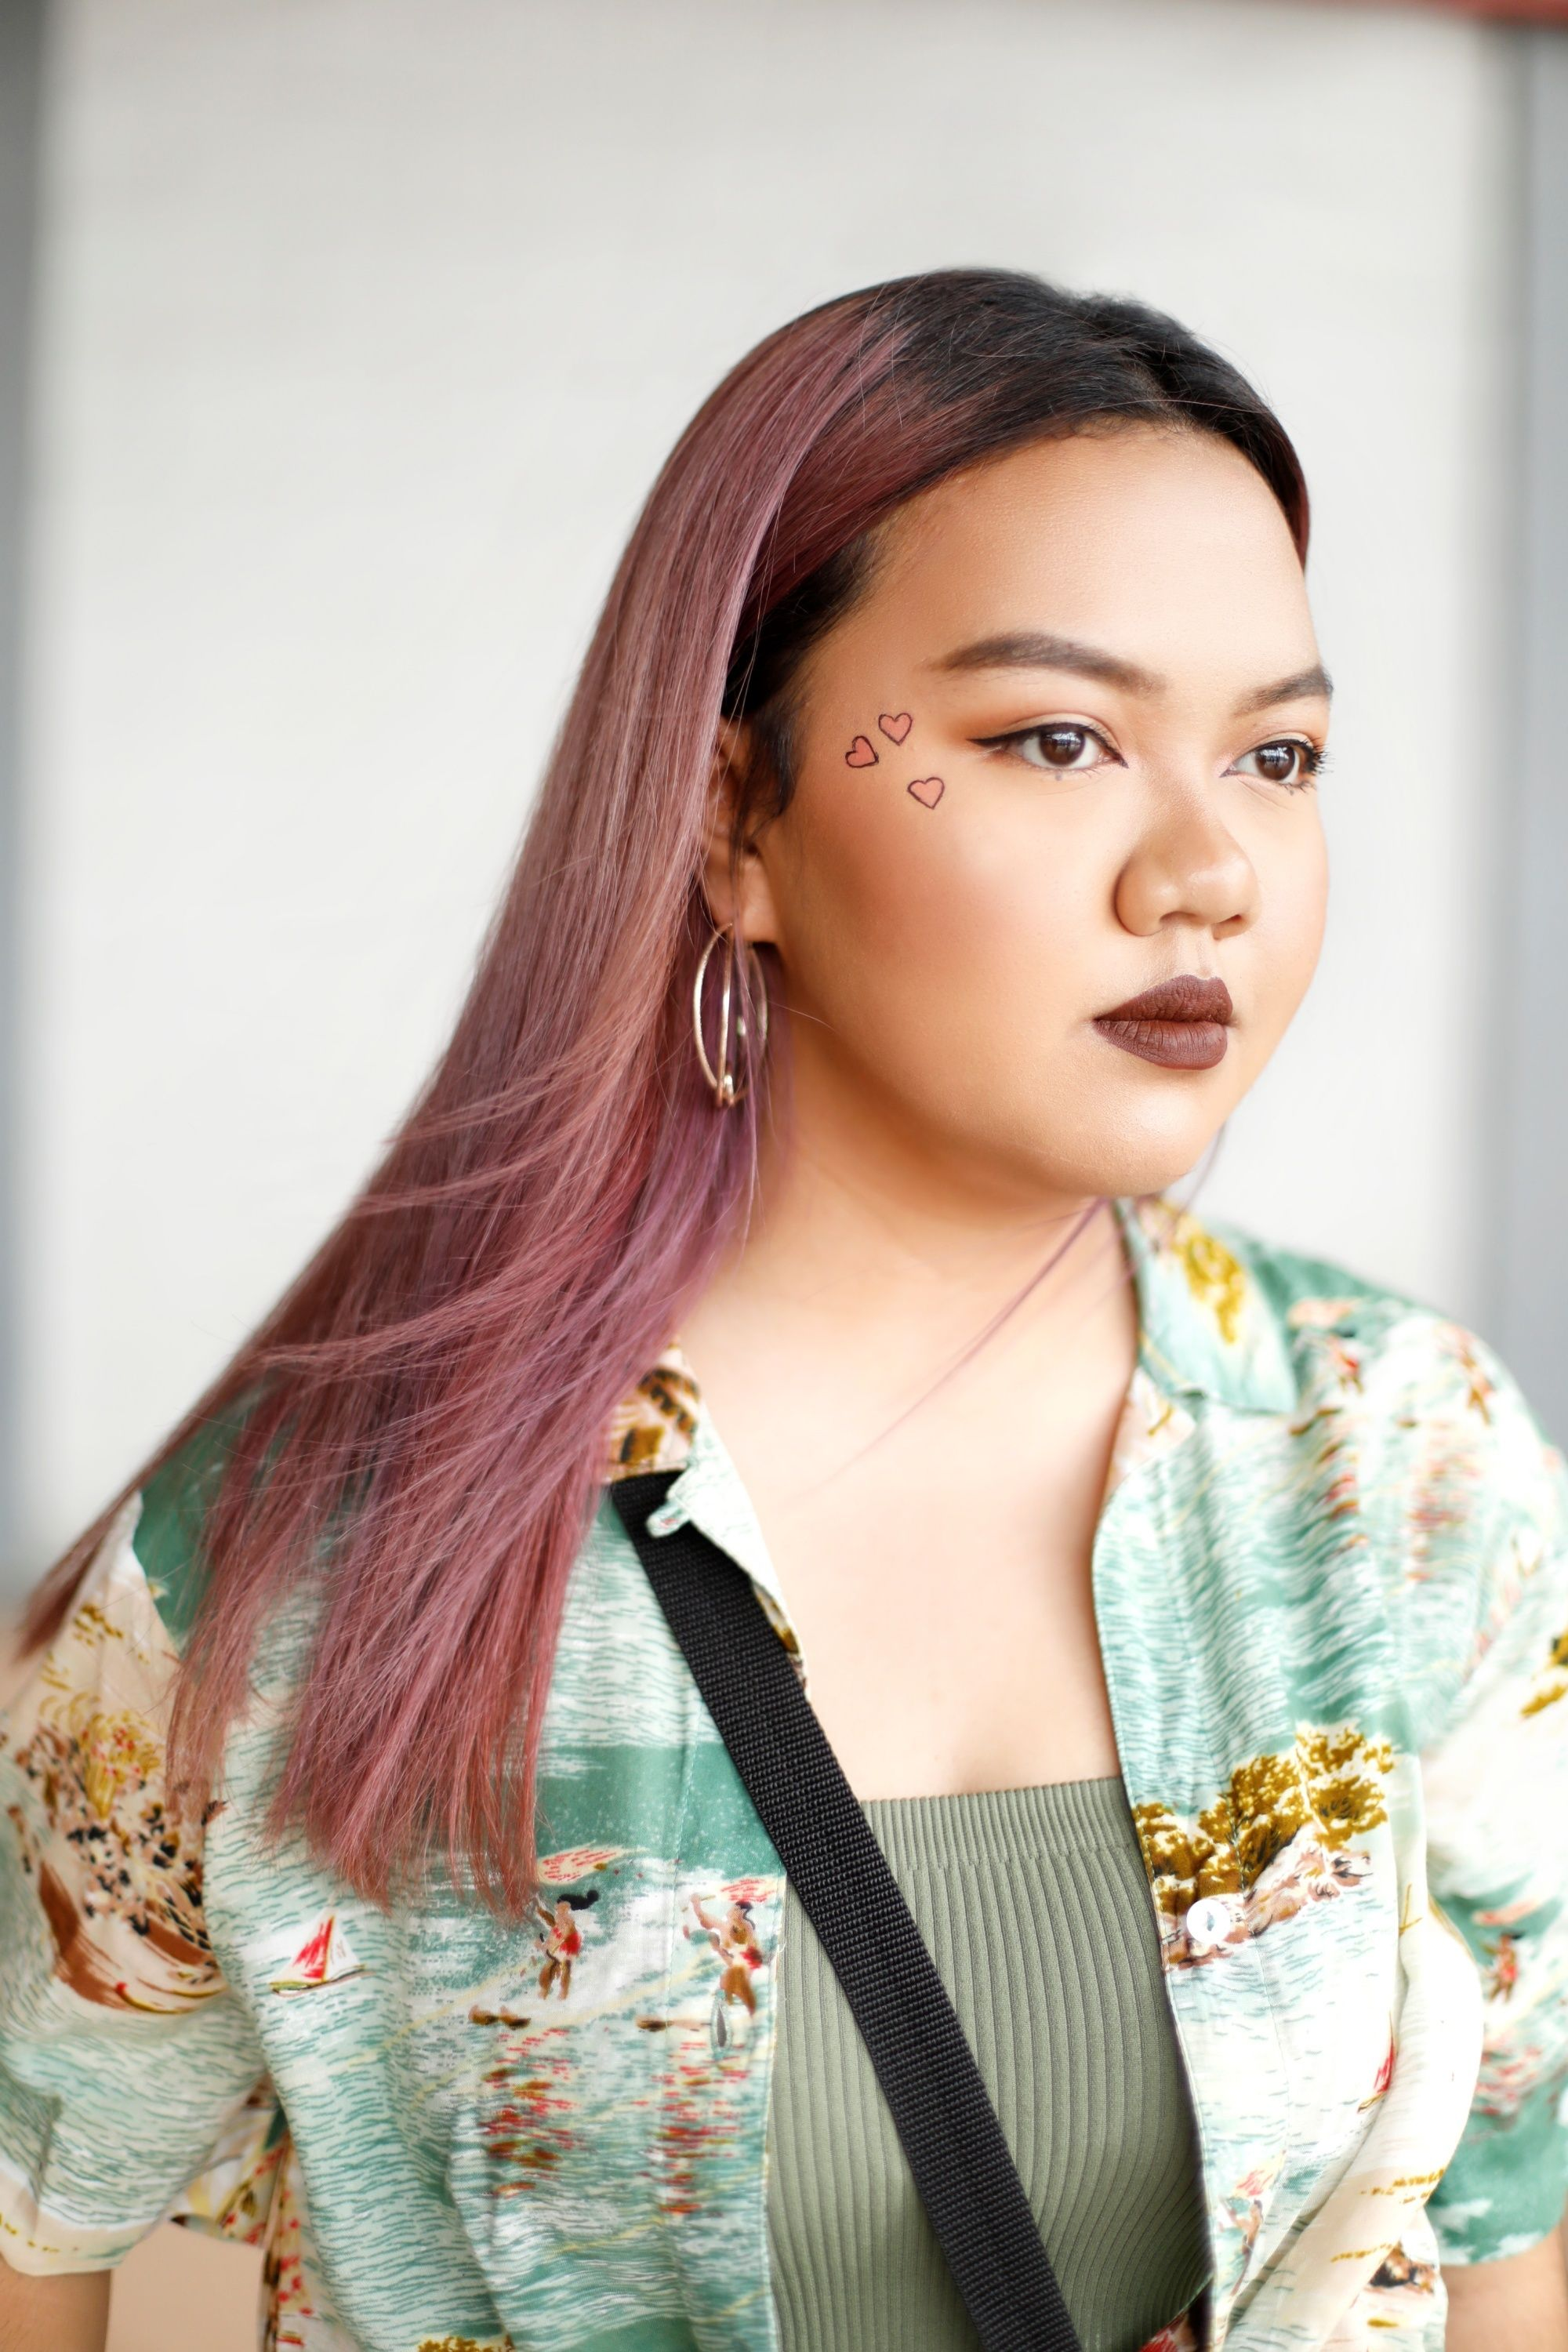 20 Best Hair Colors For Morena Skin In 2020 All Things Hair Ph,How To Organize Your Apartment